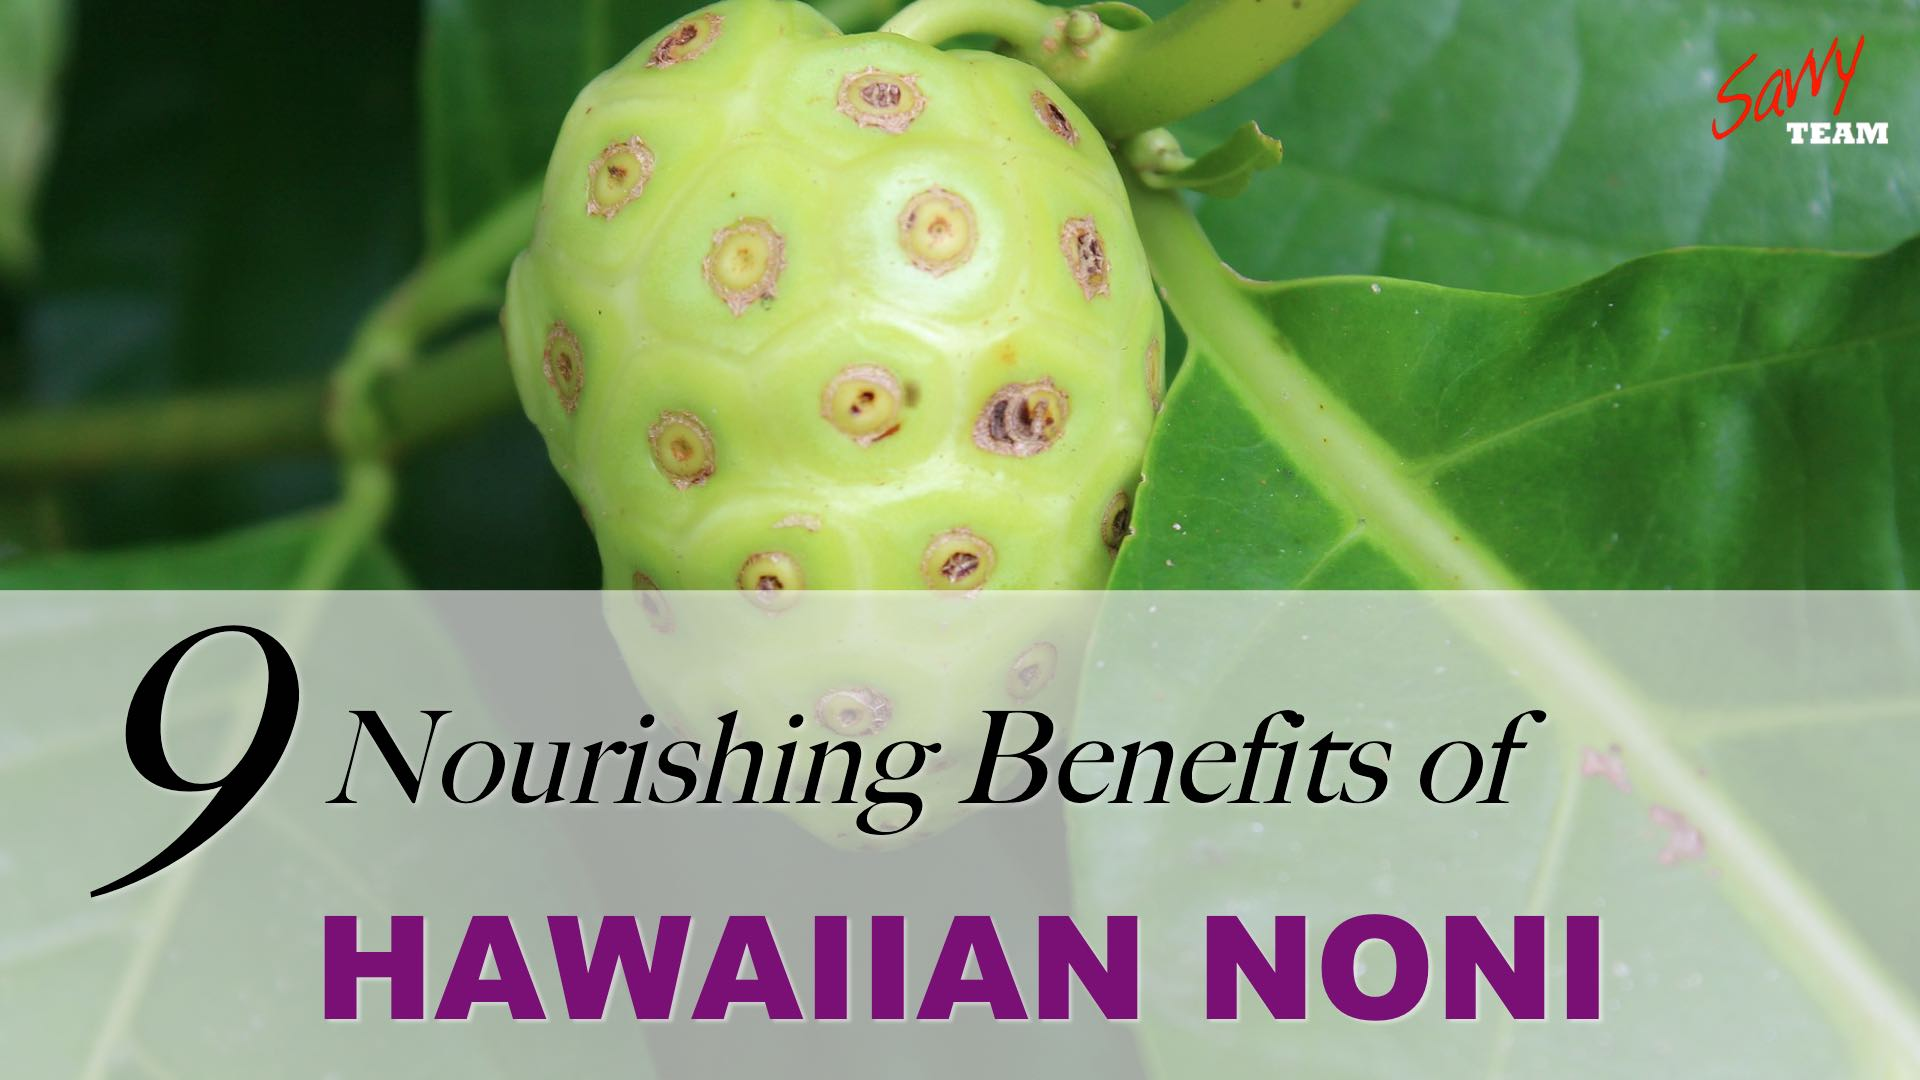 9 Nourishing Benefits of Hawaiian Noni